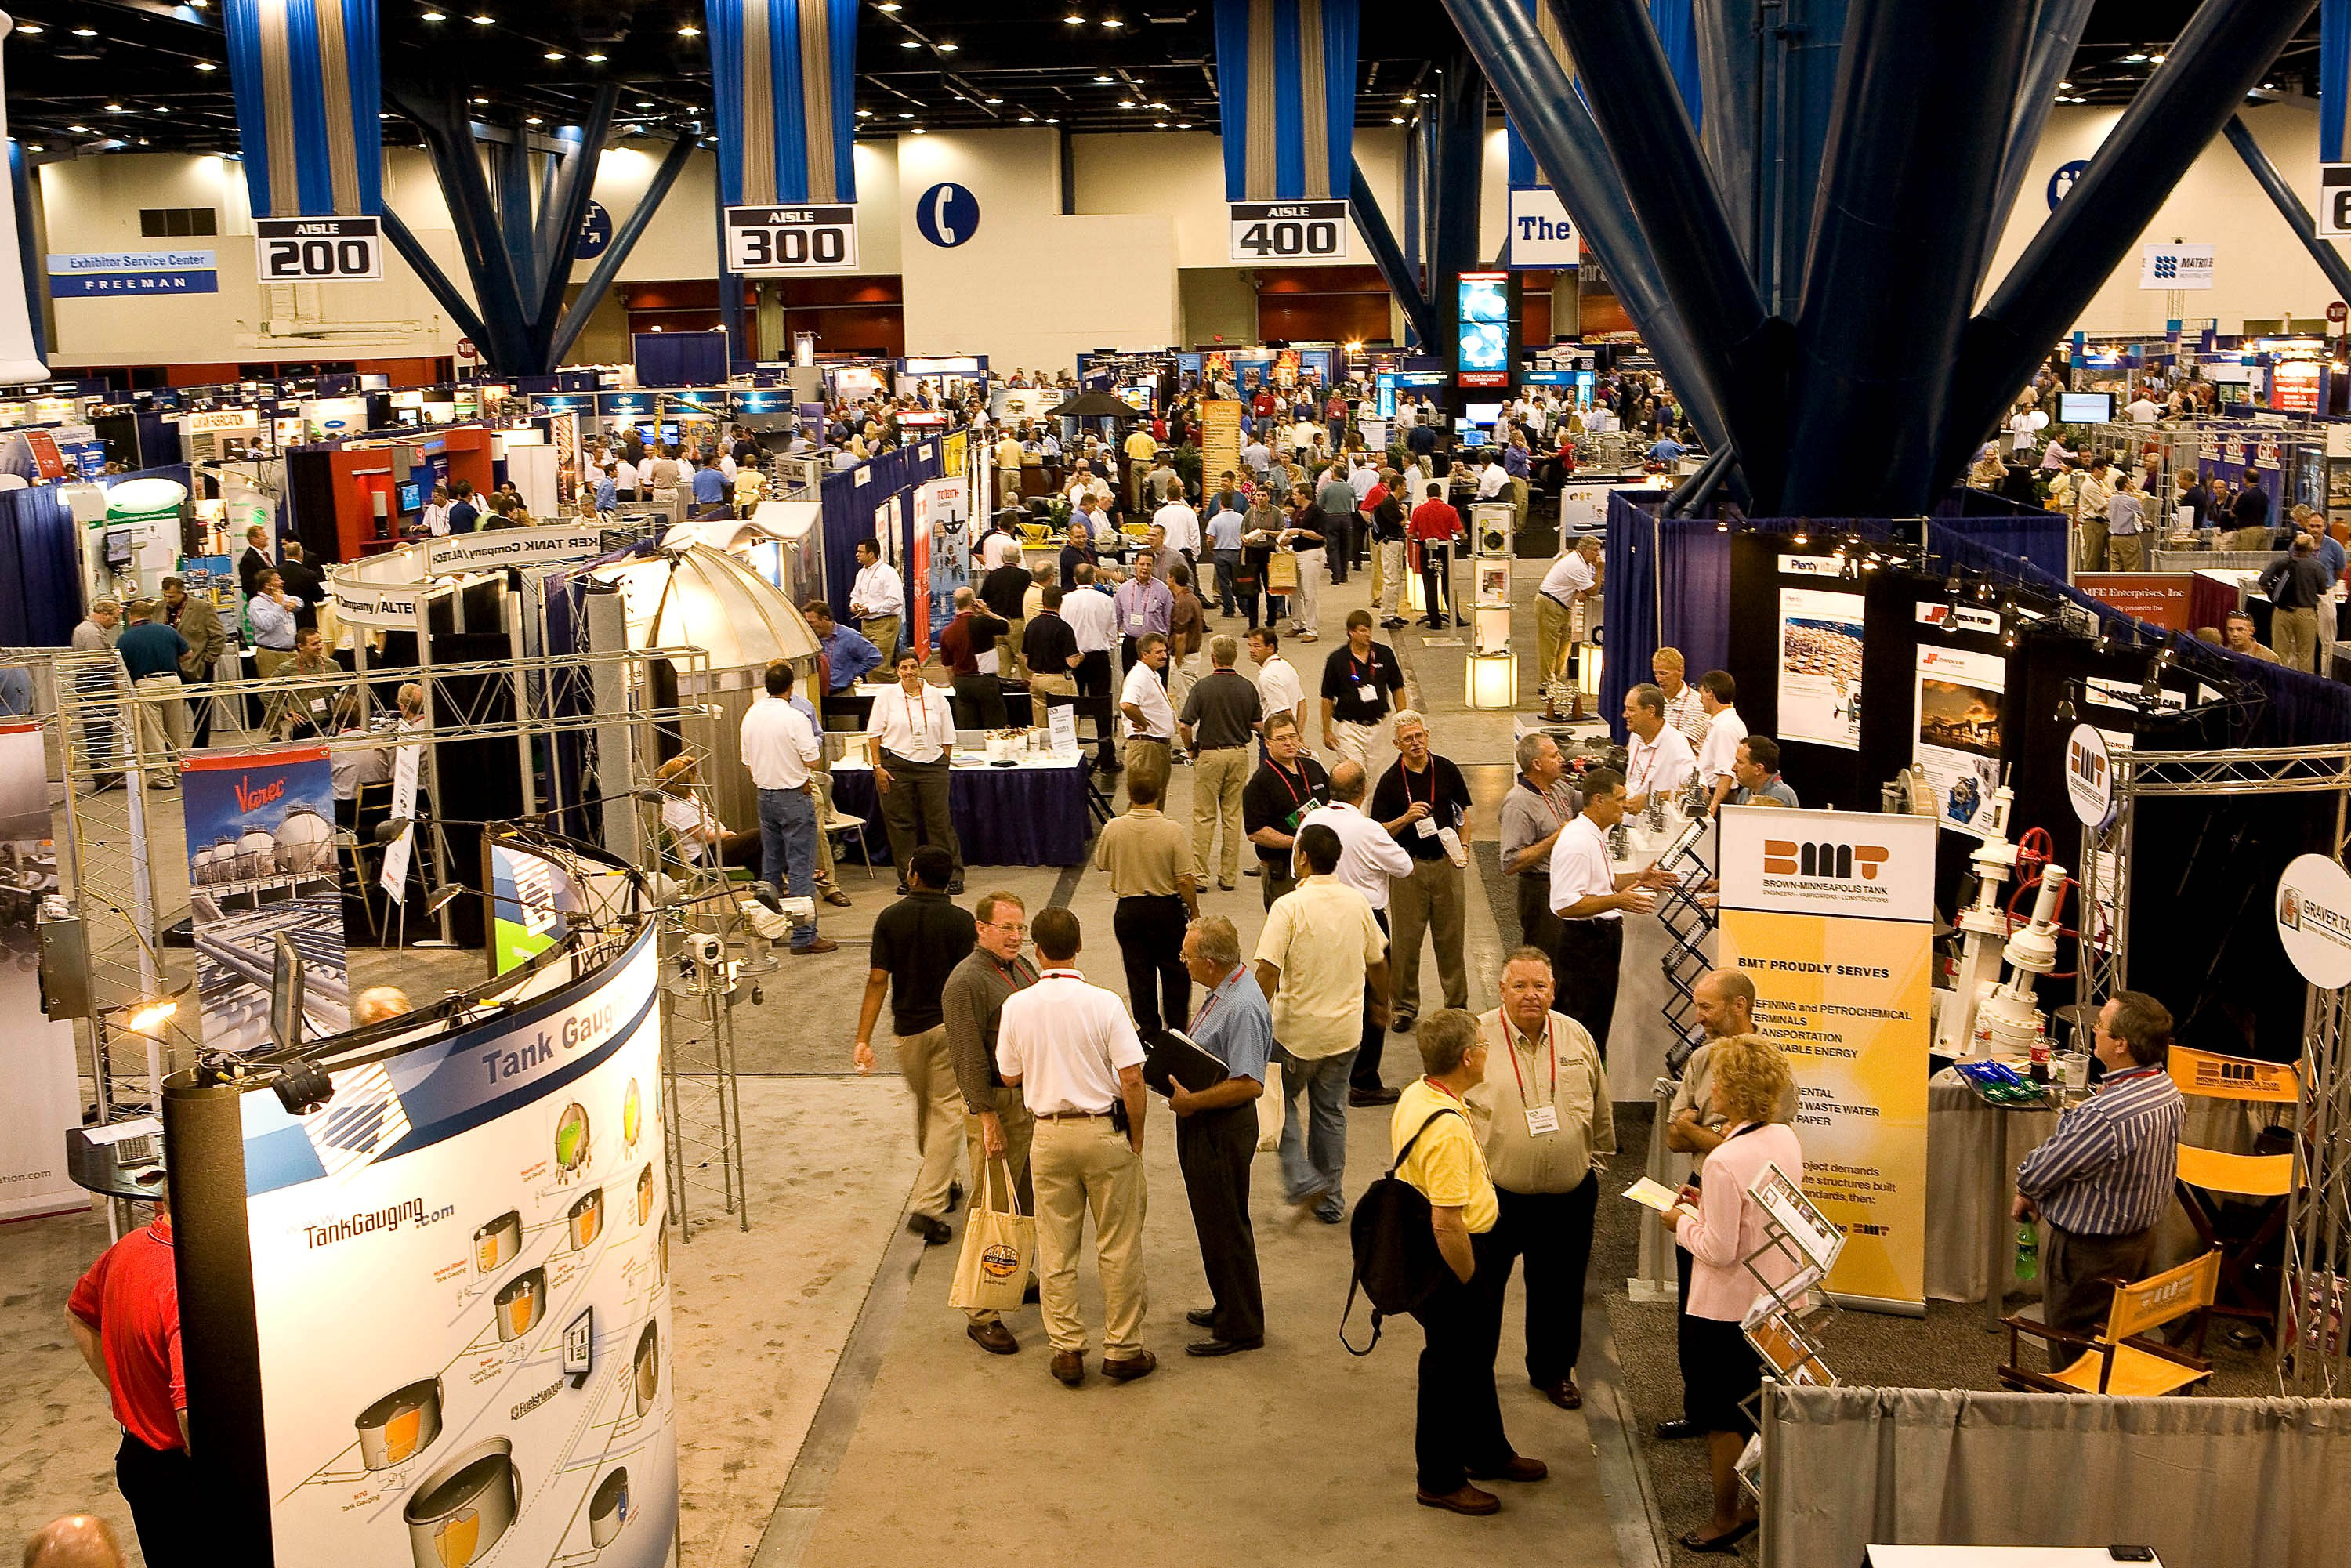 How to Stay Organized at a Trade Show in 5 Steps